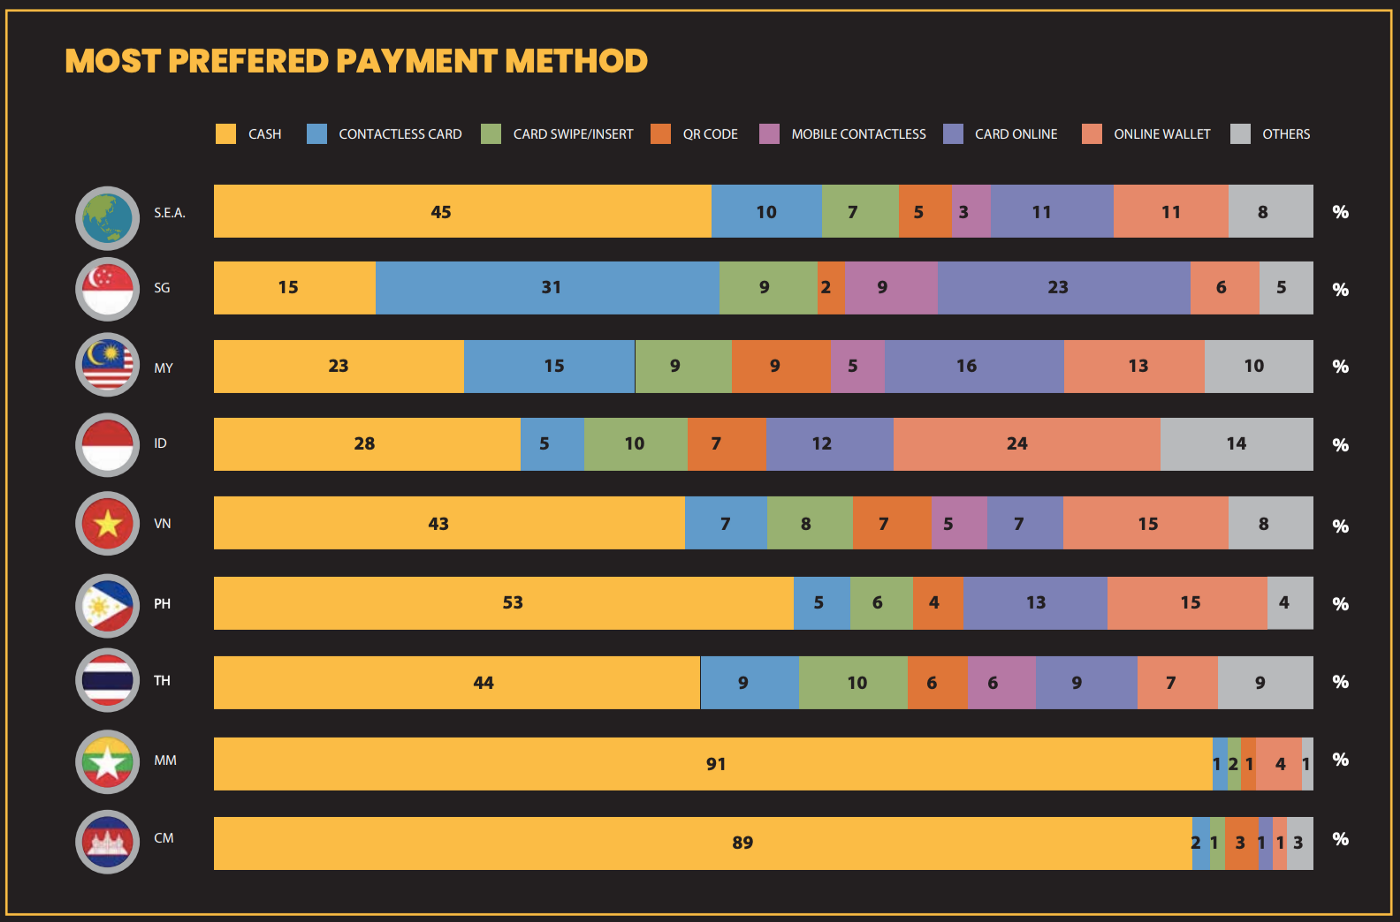 most prefered payment method in ASEAN countries